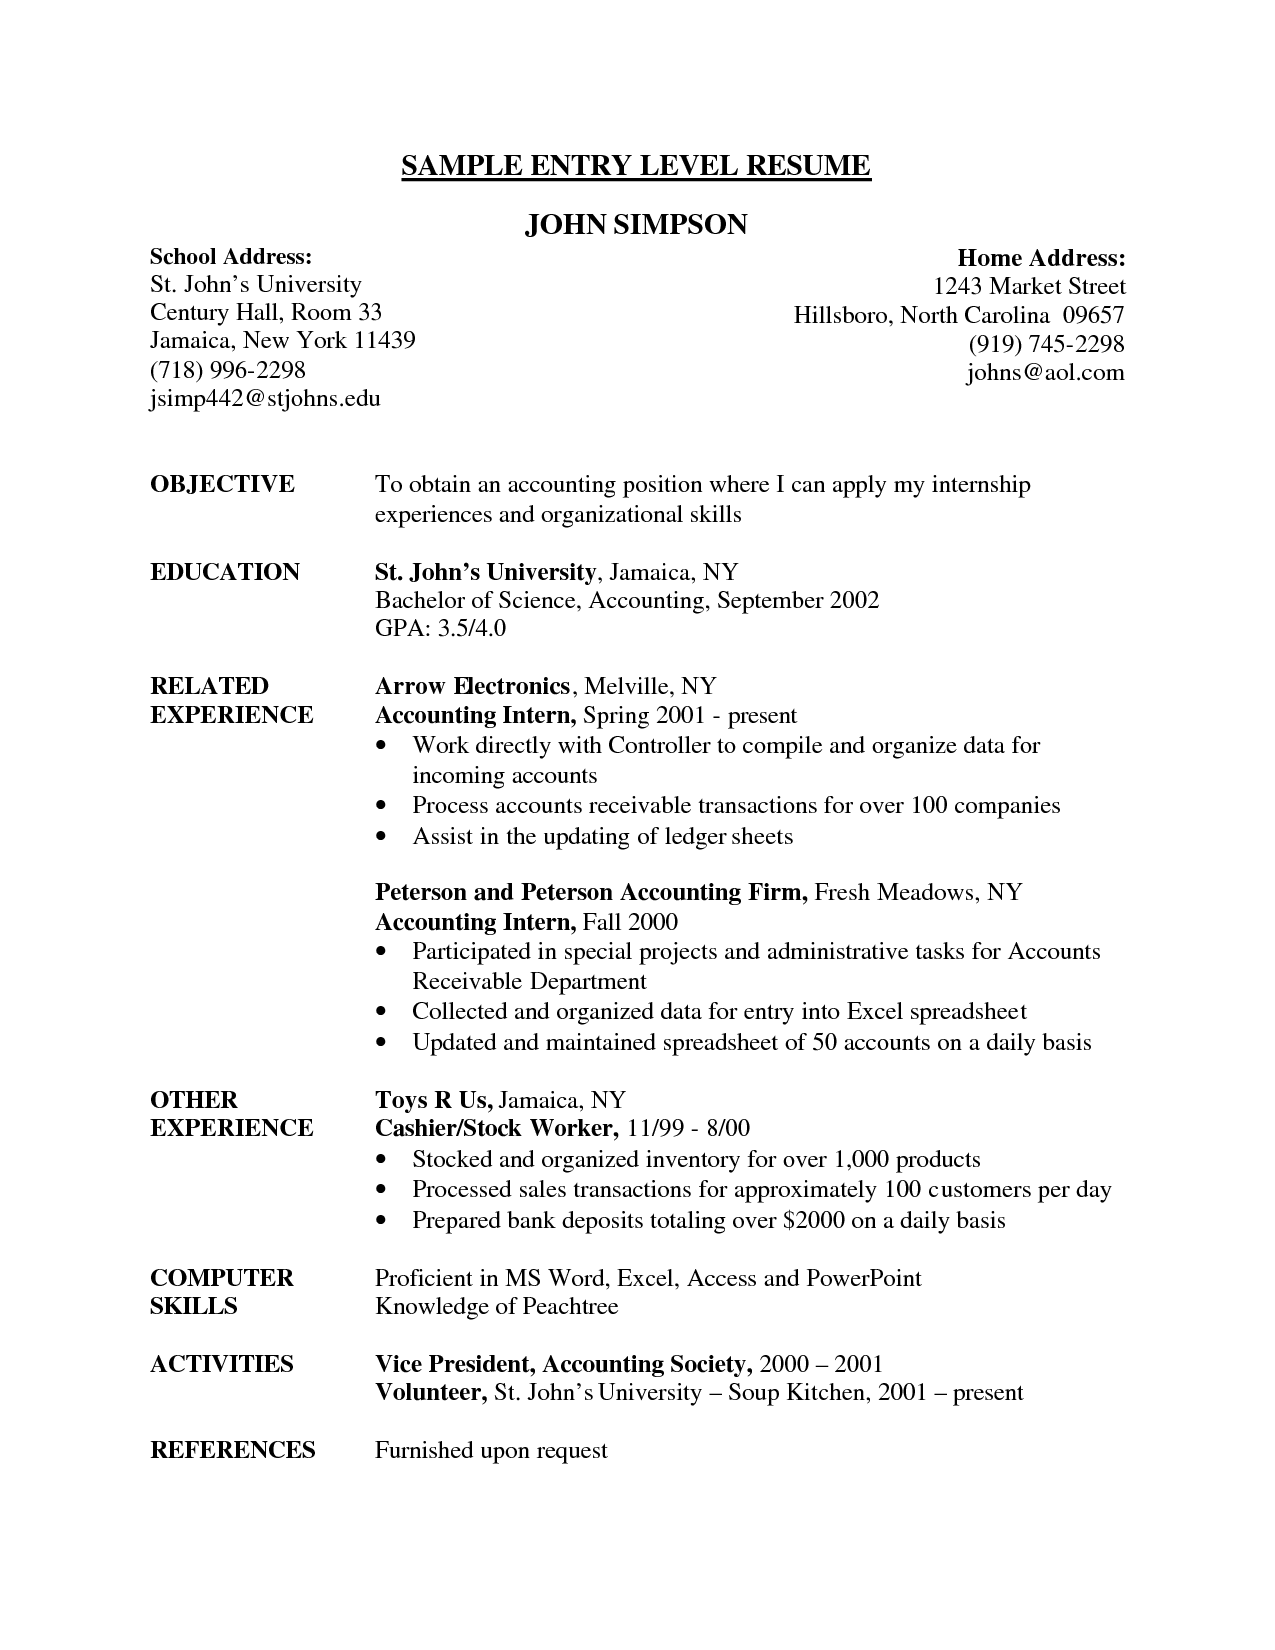 Example Of Resume Profile Entry Level resumecareer – Entry Level Resumes